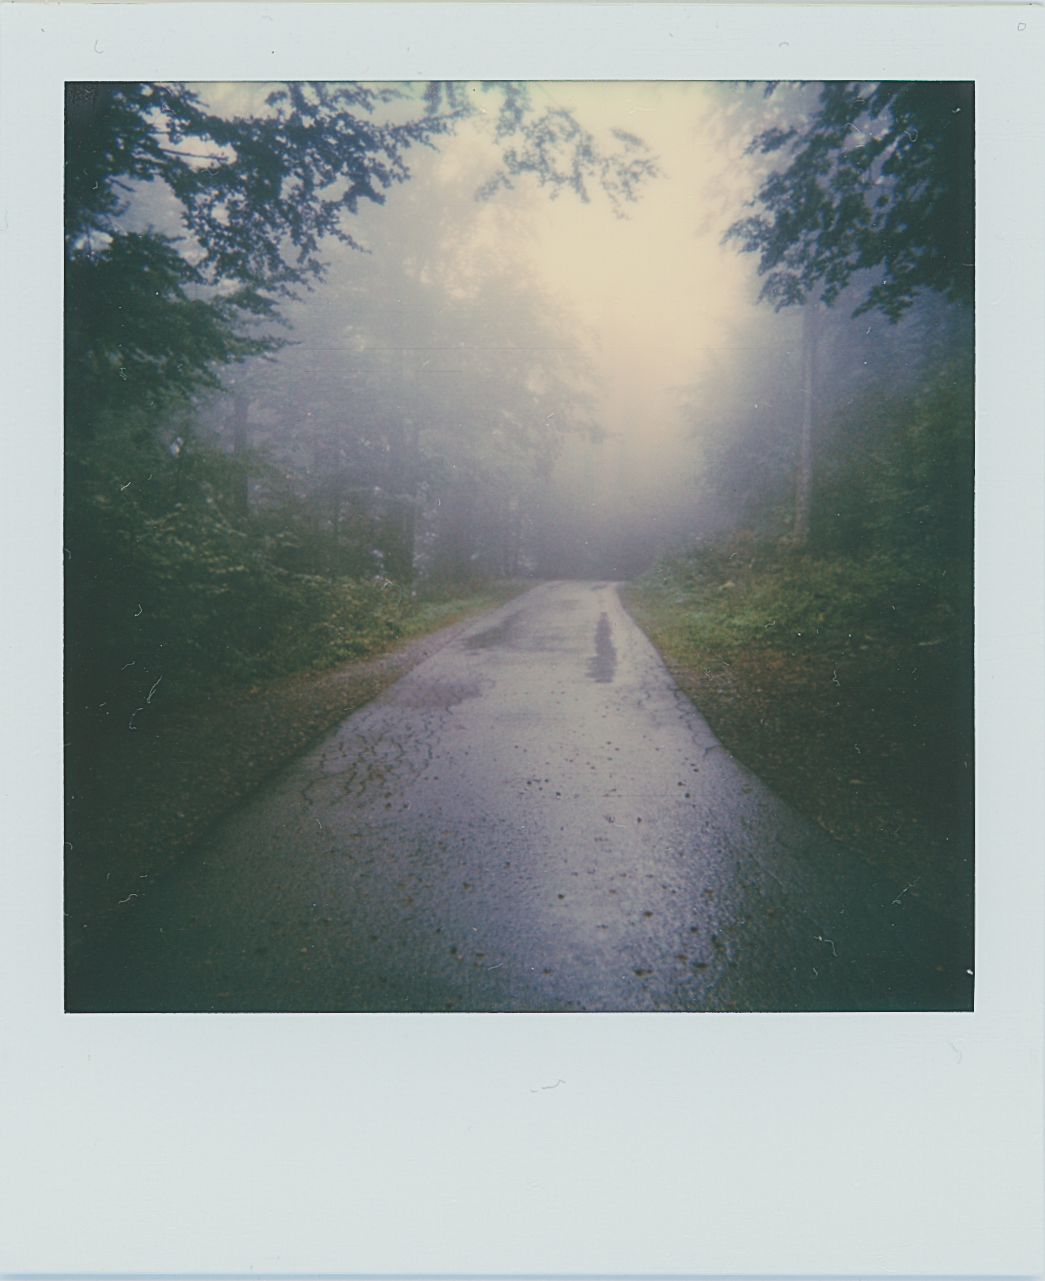 Foggy Road | Polaroid 600 | Josip Sore